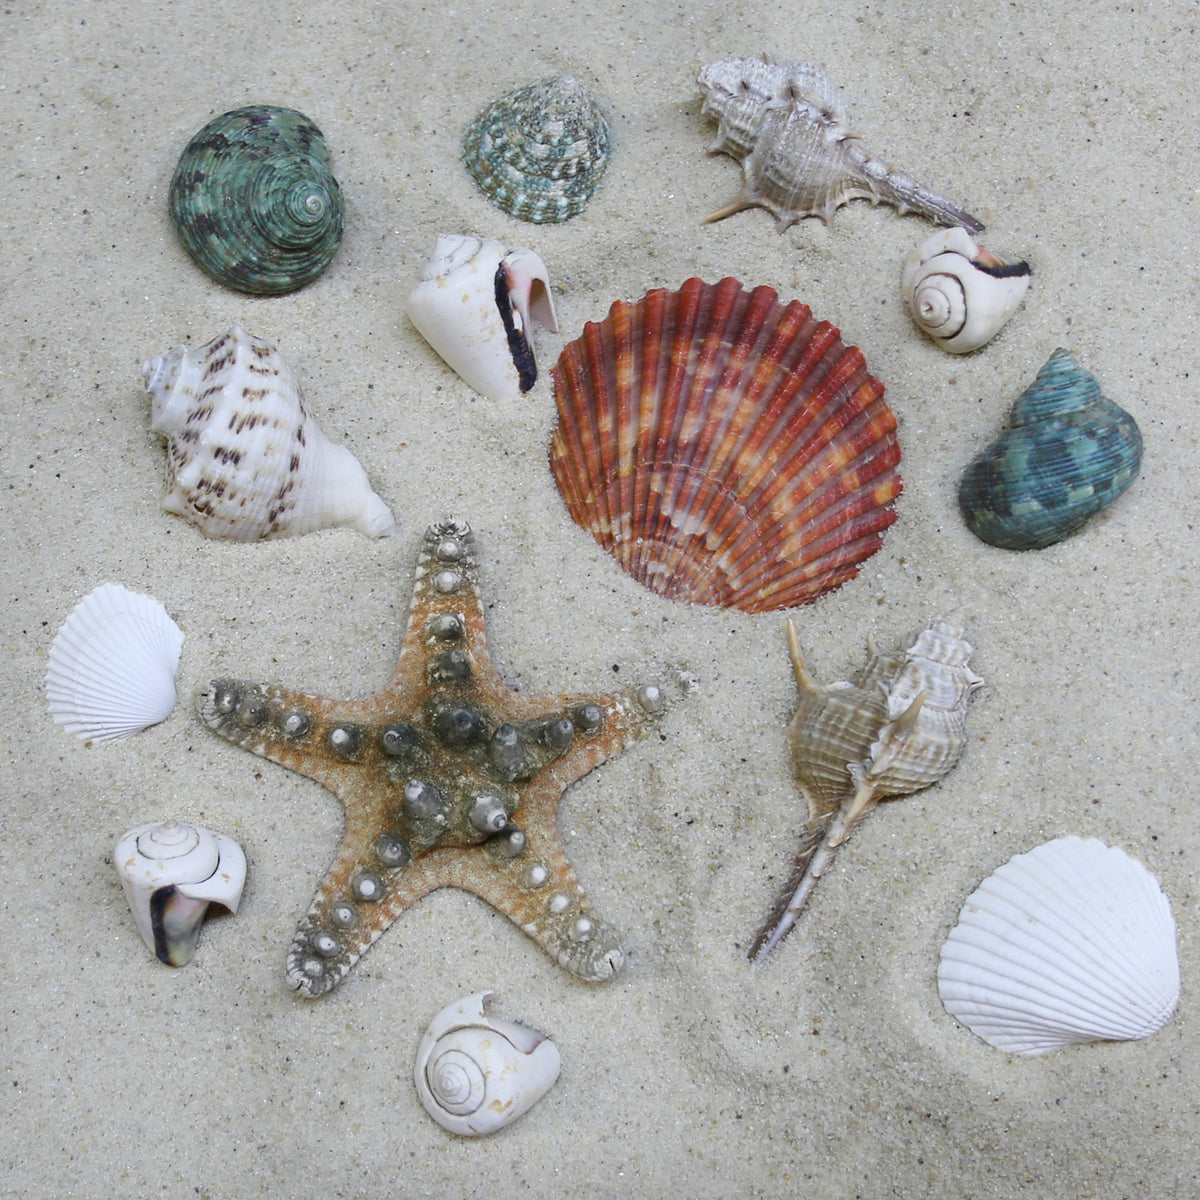 Assorted Seashells